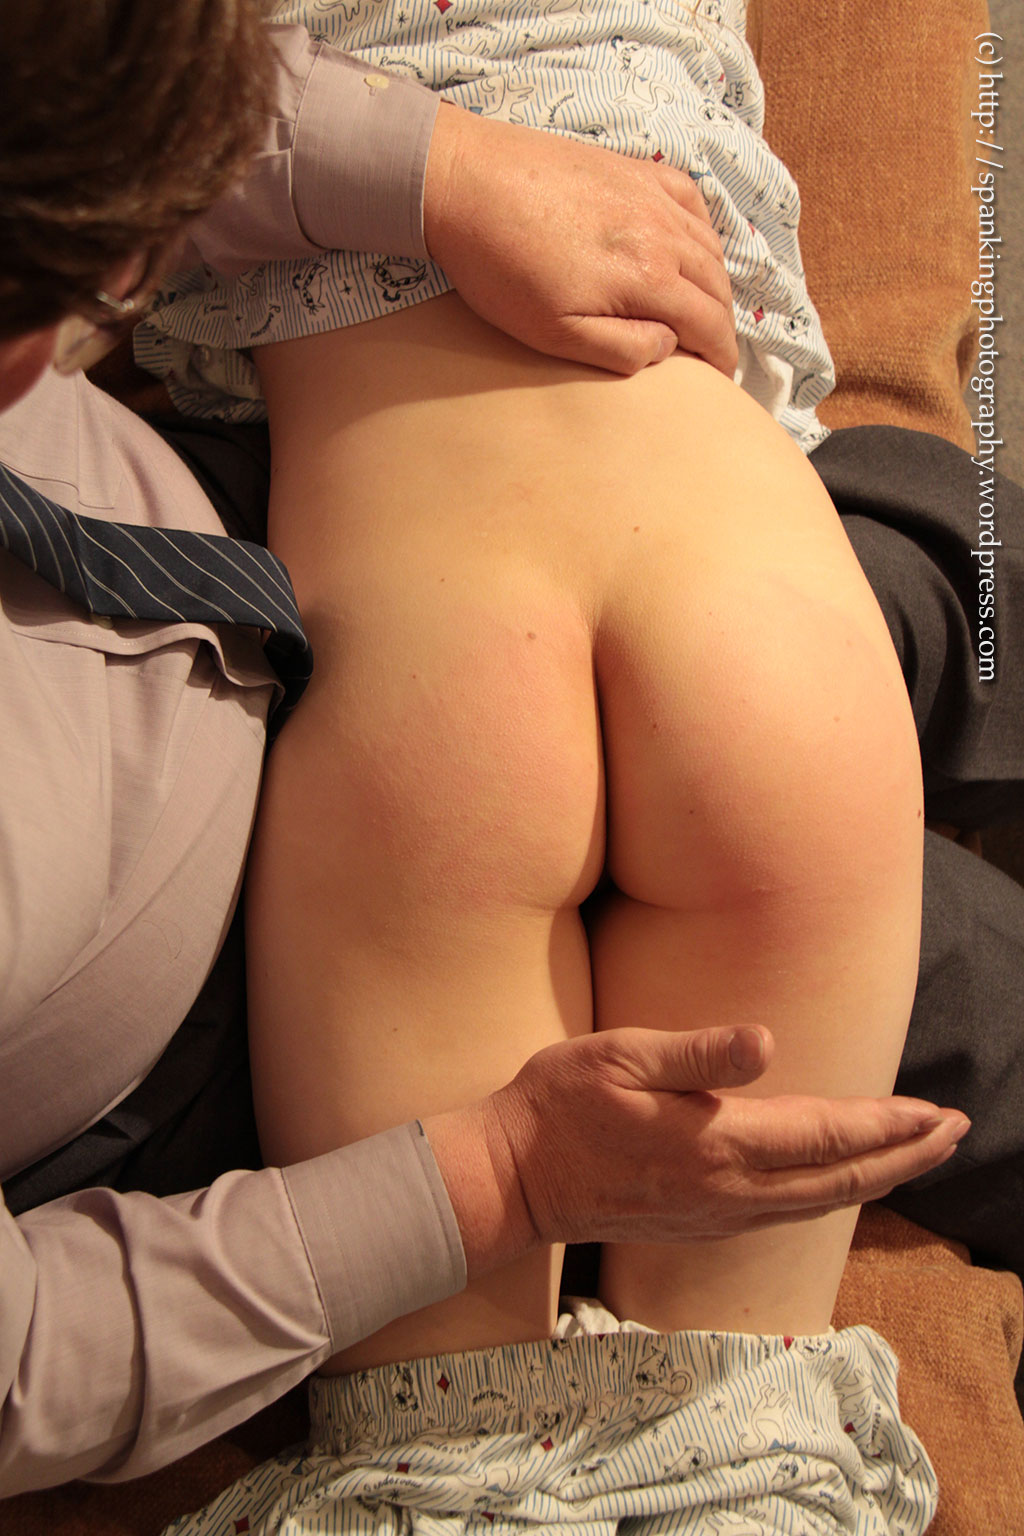 Still variants? Wife spanked otk stories Seldom